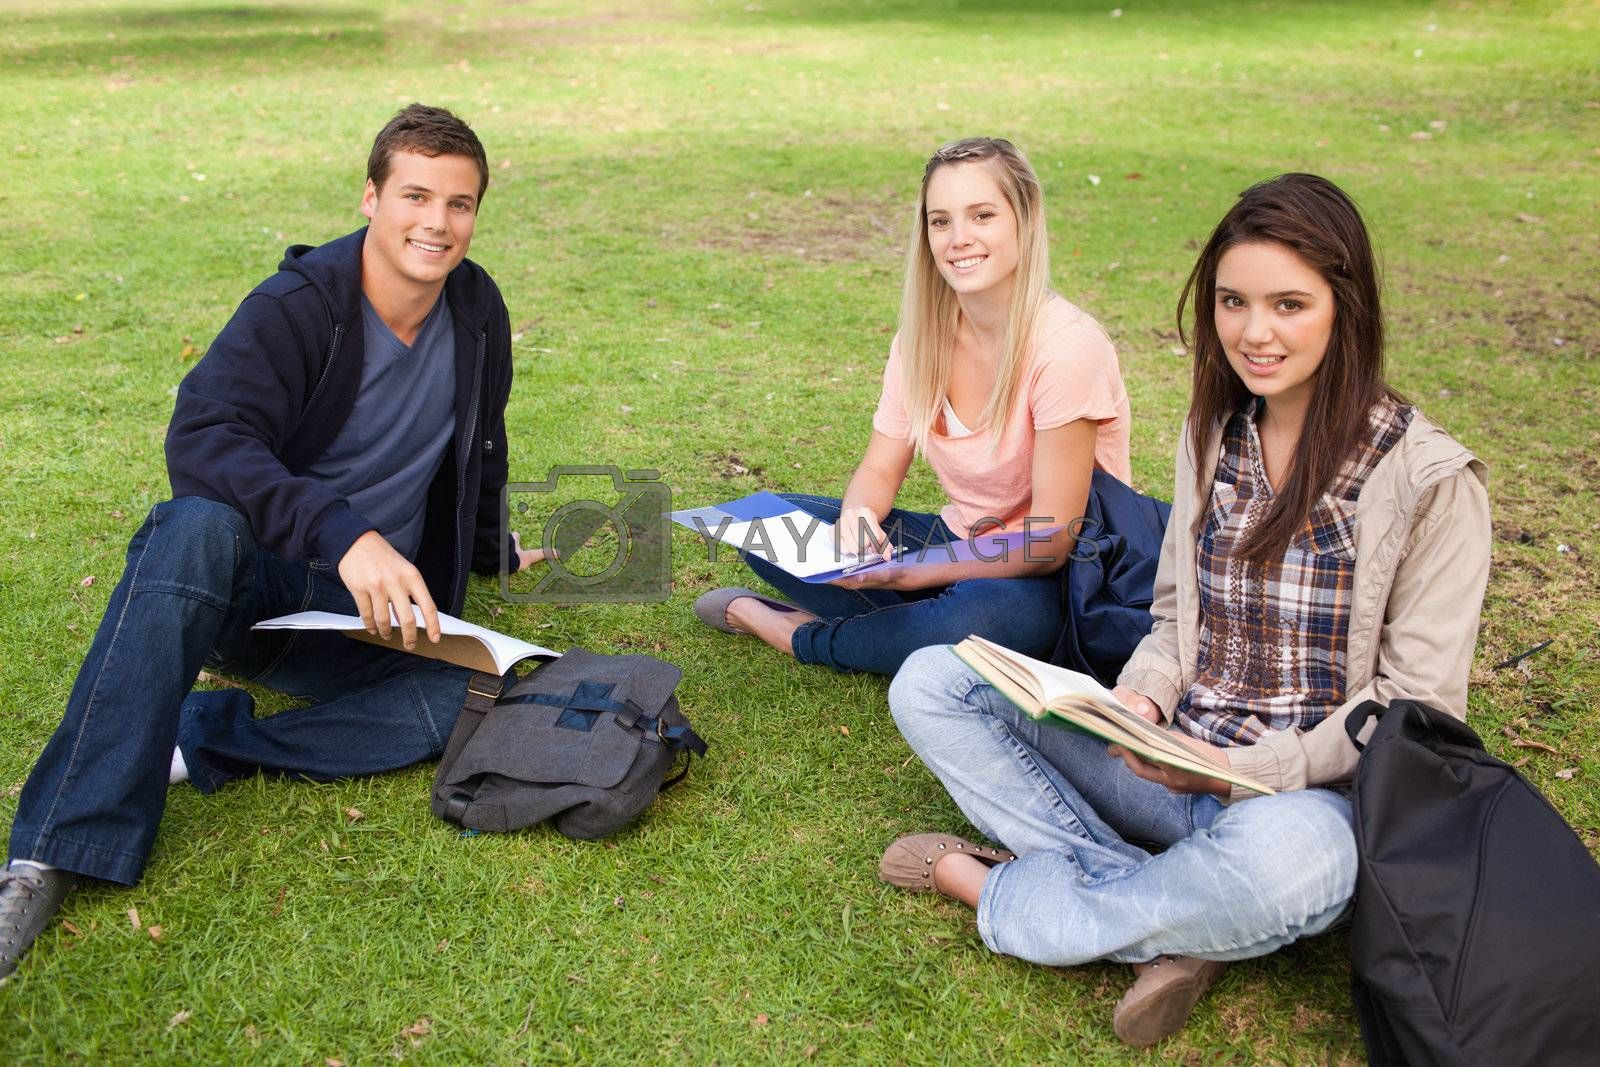 Three smiling students studying together in a park